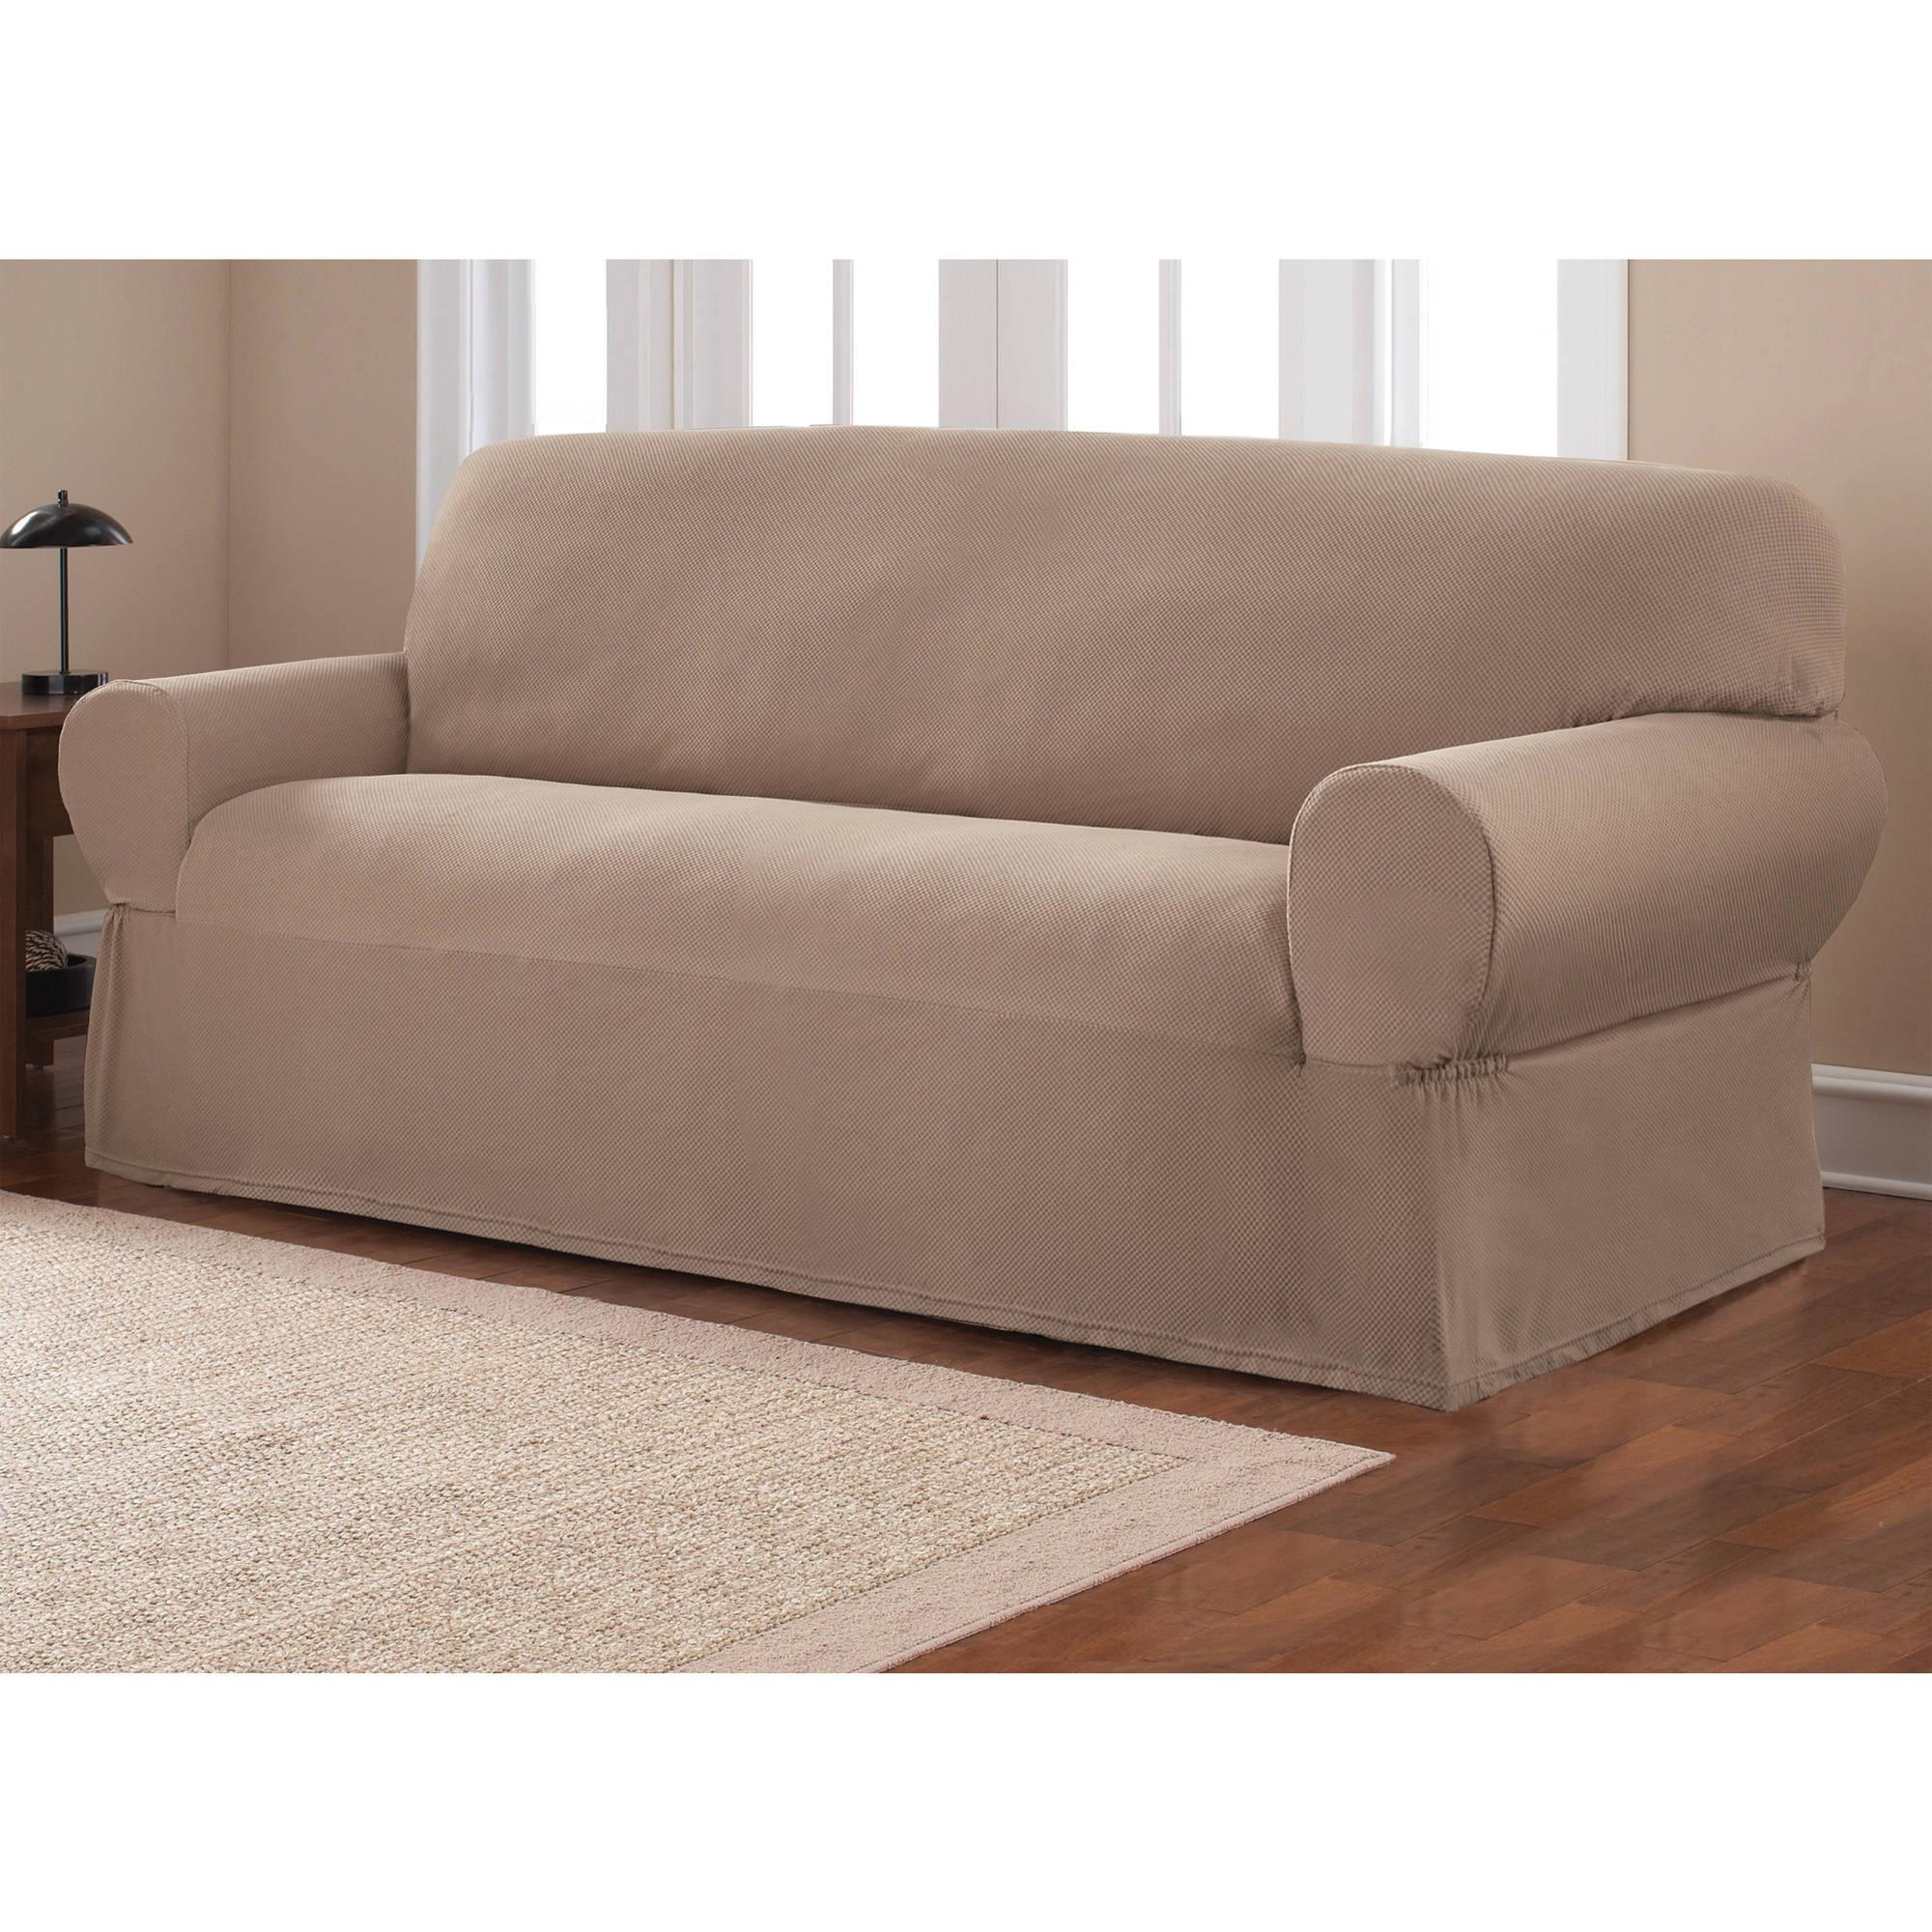 Castro Convertible Sofa Bed (Image 7 of 20)